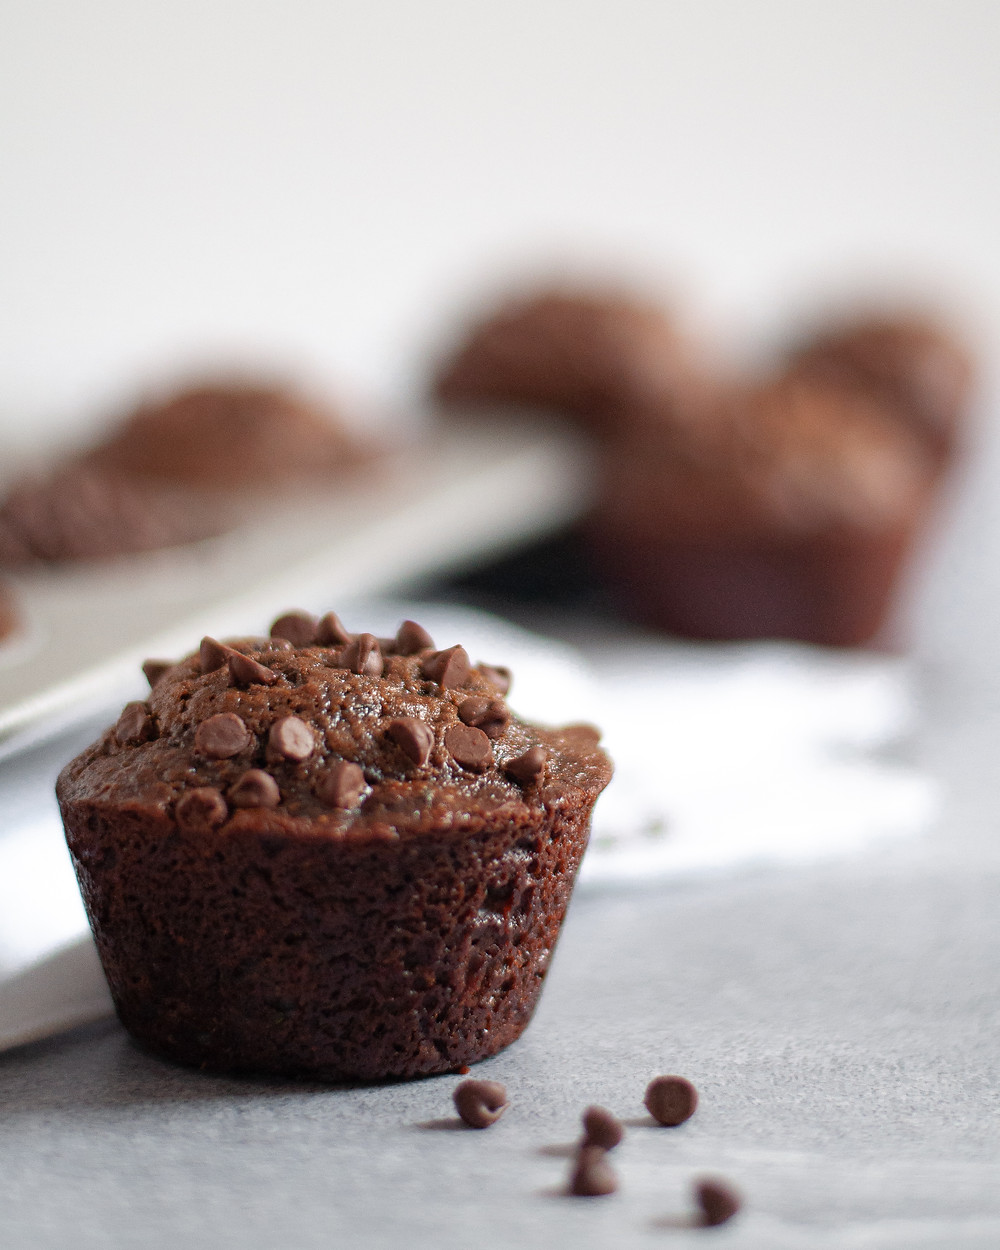 Close up of a chocolate zucchini muffin topped with mini chocolate chips, with additional chocolate zucchini muffins in faded in the background